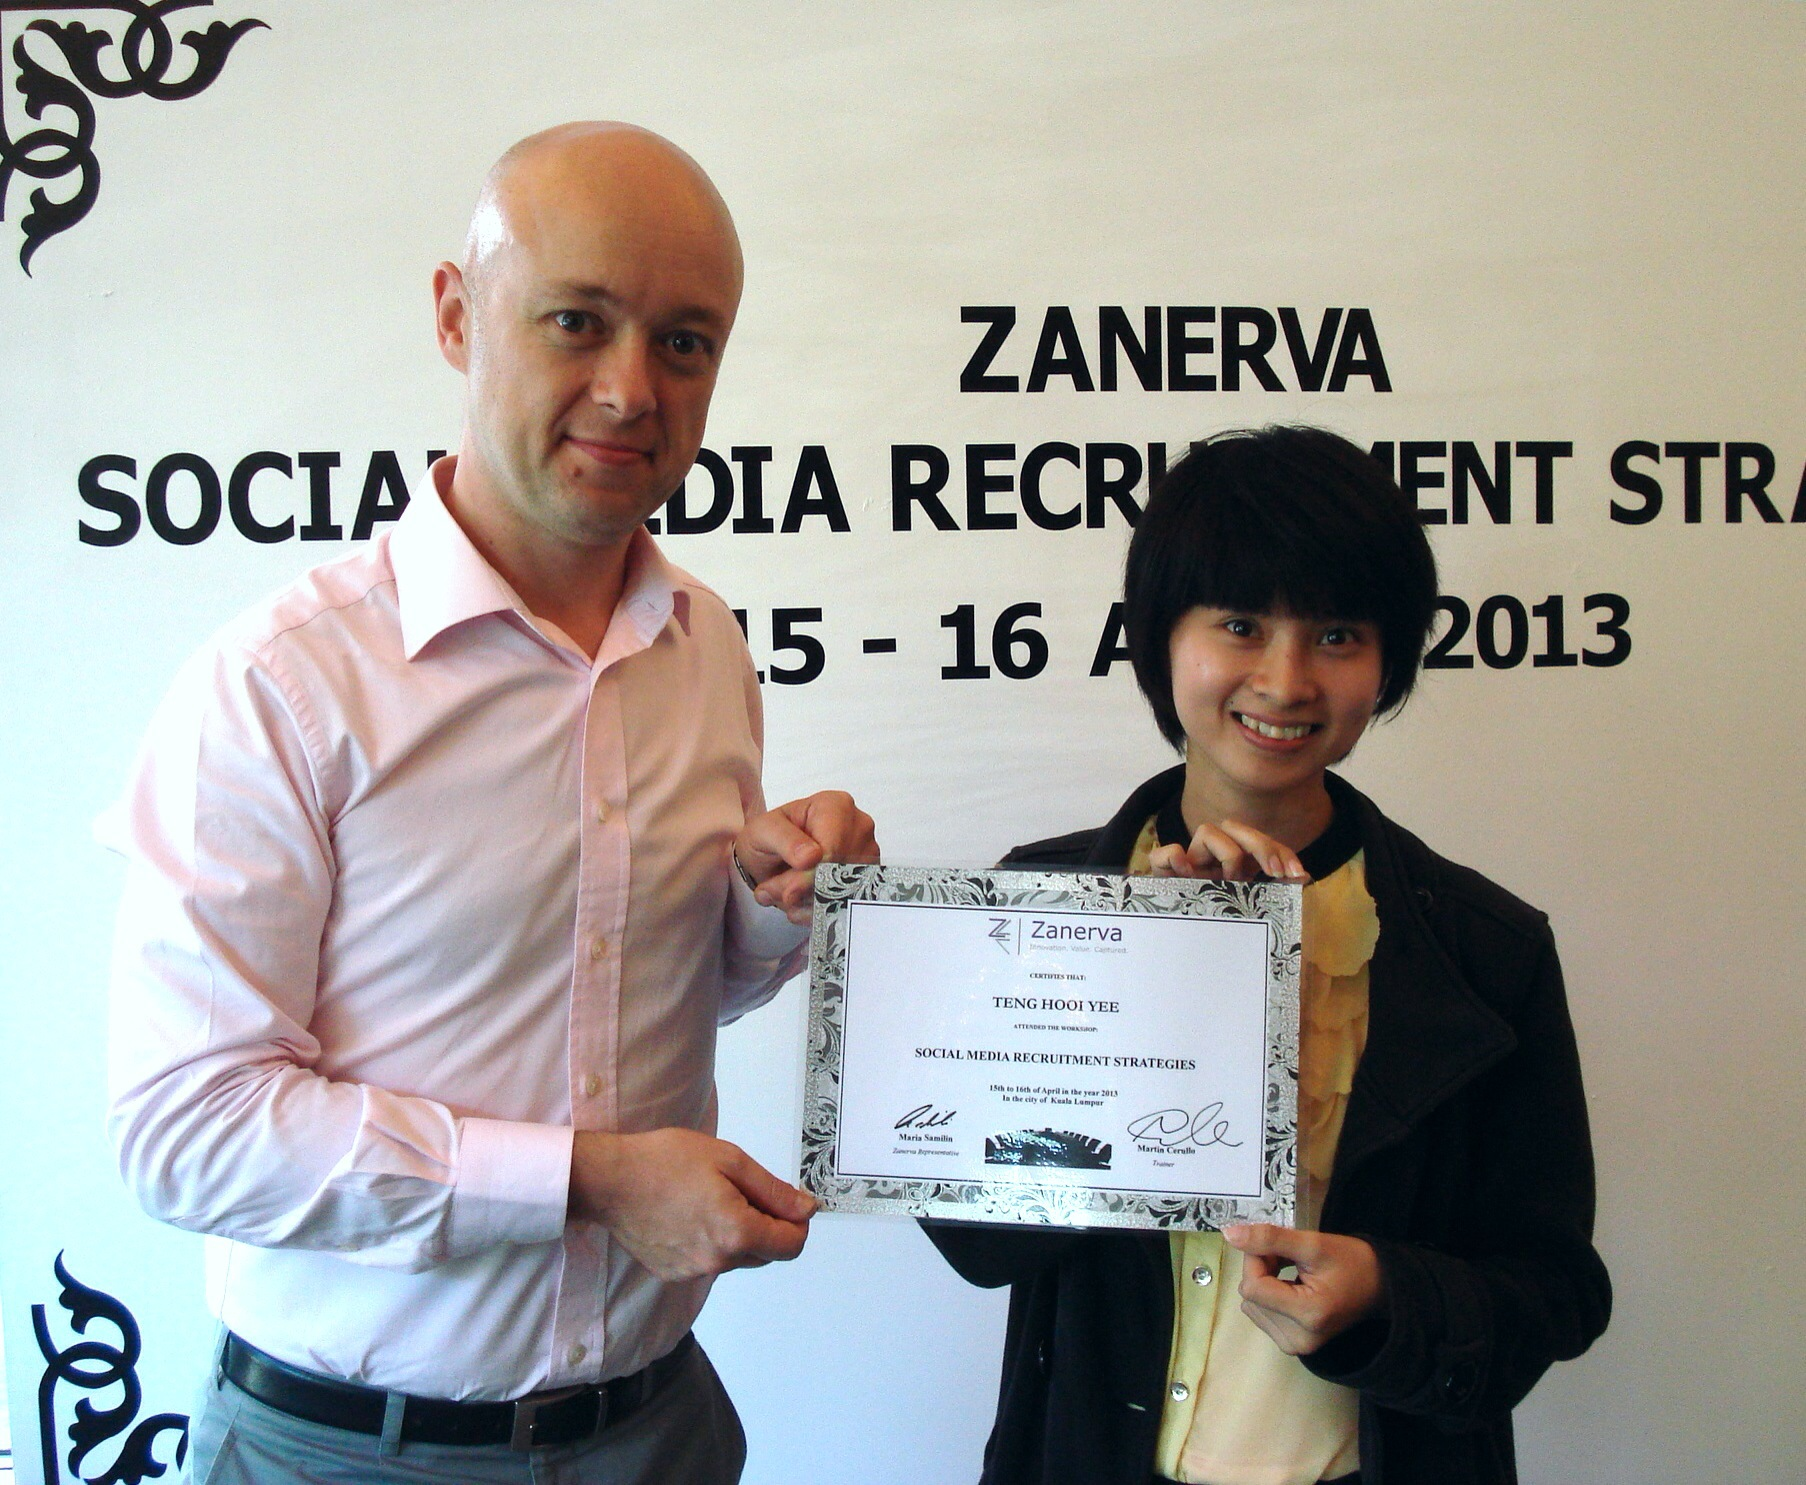 Teng Hooi Yee, Human Resource Executive at  Lotte Chemical Titian (M) Sdn Bhd   receiving her certificate of participation for attending the Social Media Recruitment Strategies Workshop in Kuala Lumpur